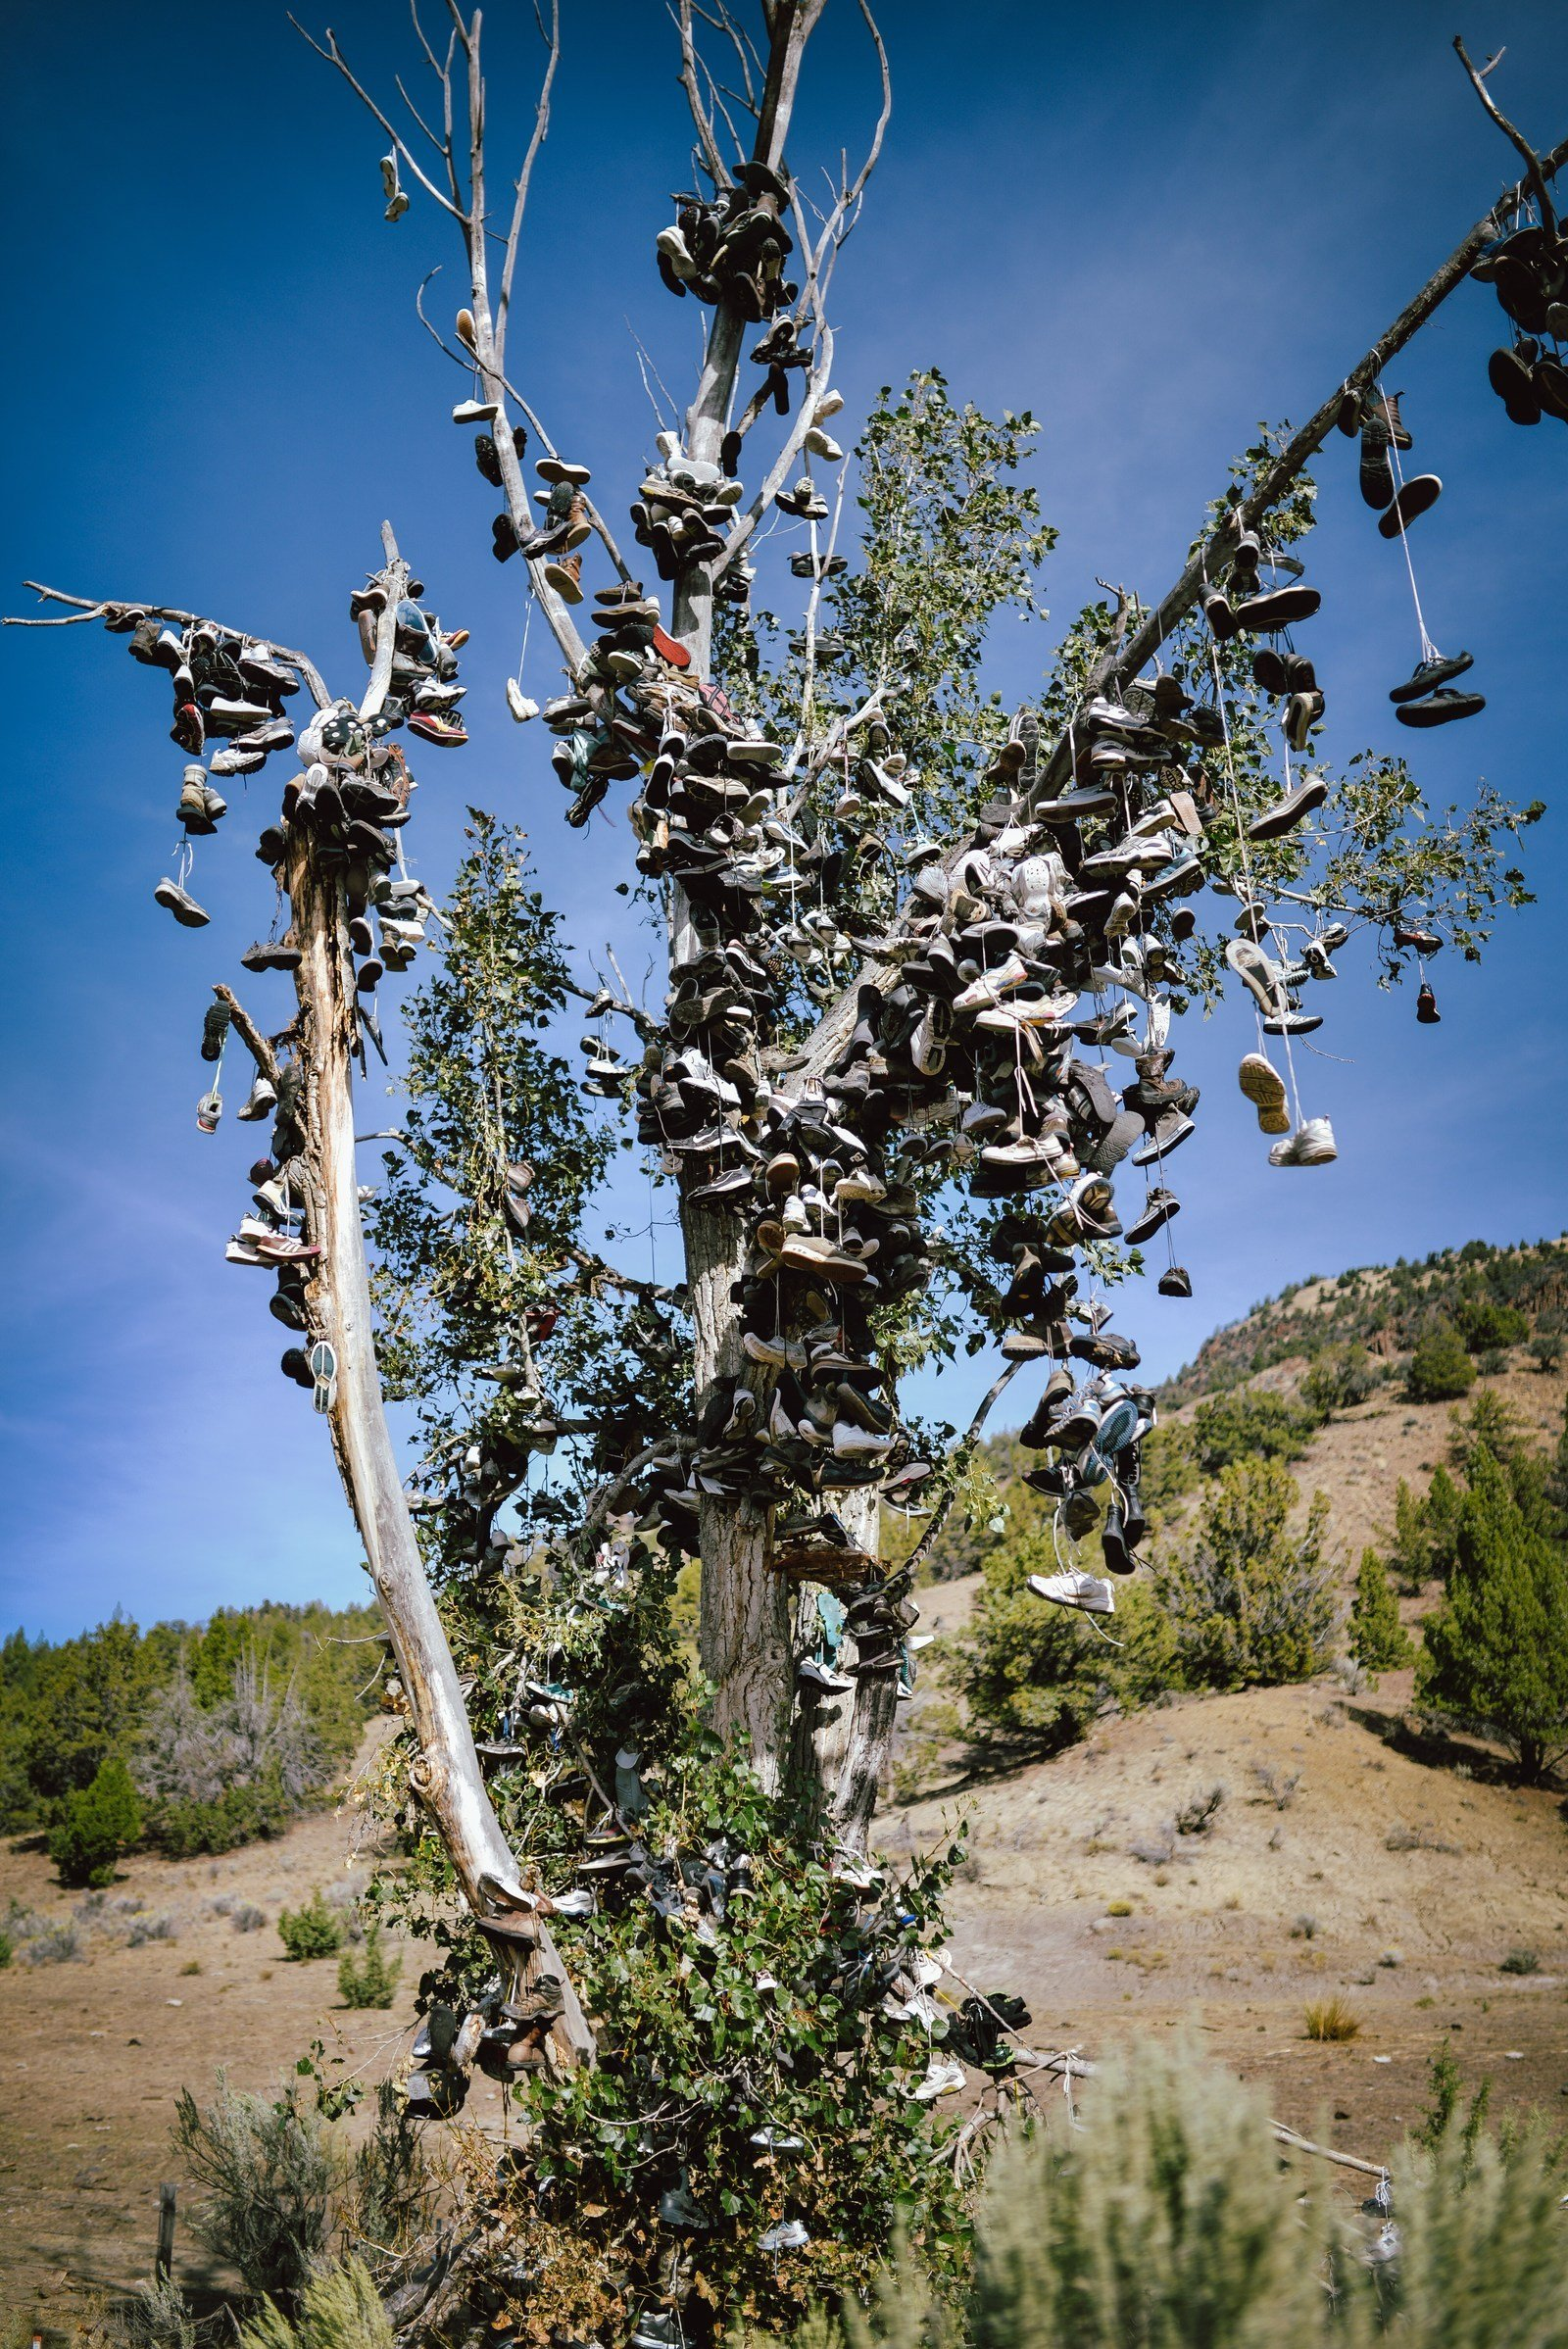 chaussures suspendues  u00e0 un arbre aux usa  ochoco highway